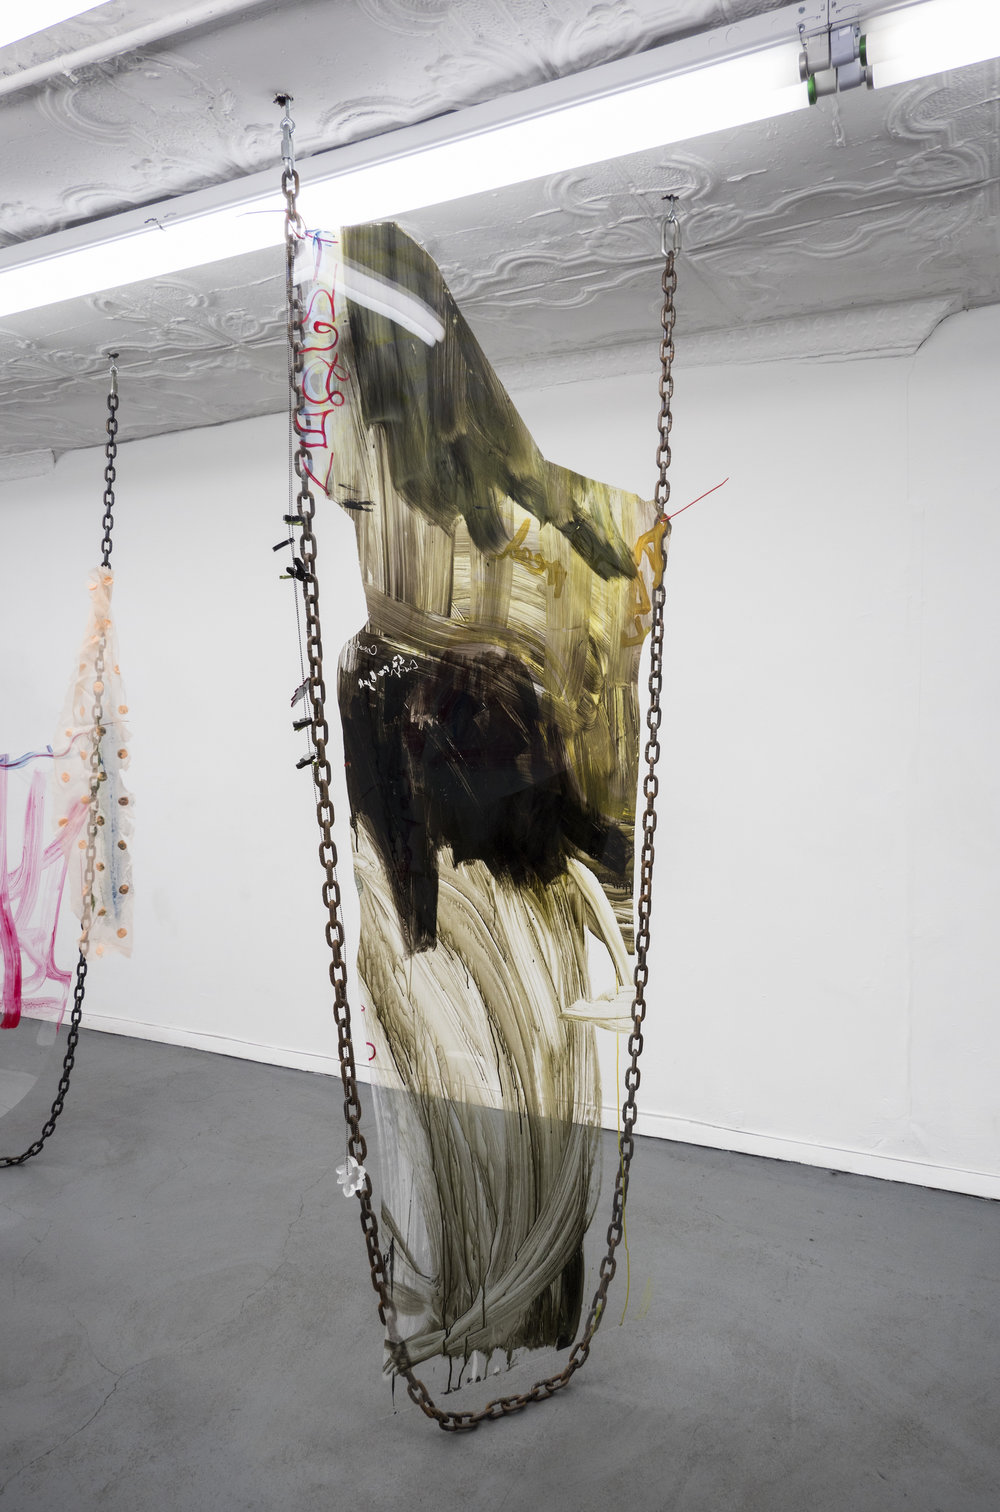 Raque Ford,  Get Double Flower Wet,  2017, acrylic paint on polypropelene, steel chain, and zip ties, 86 x 39 in